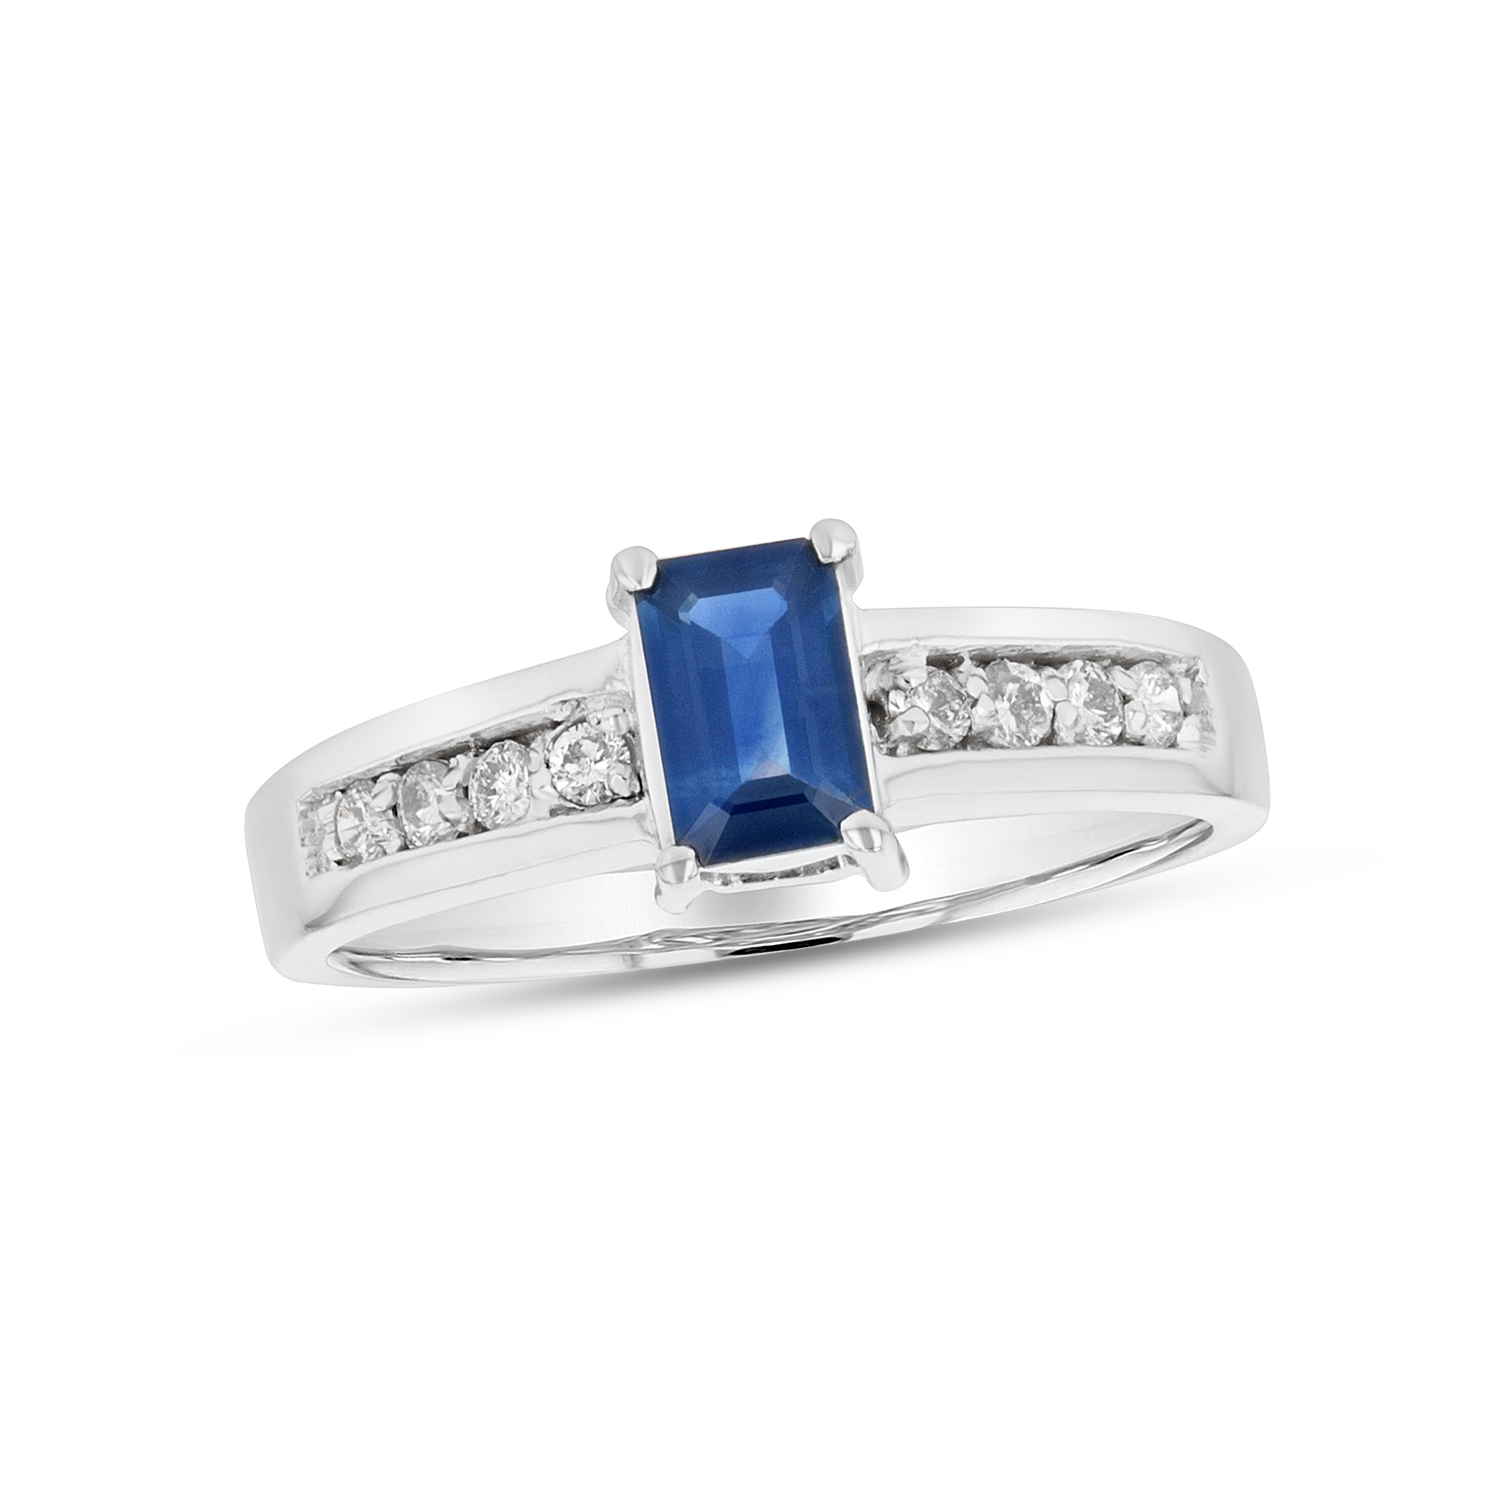 View 0.81ctw Diamond and Sapphire Ring in 14k White Gold